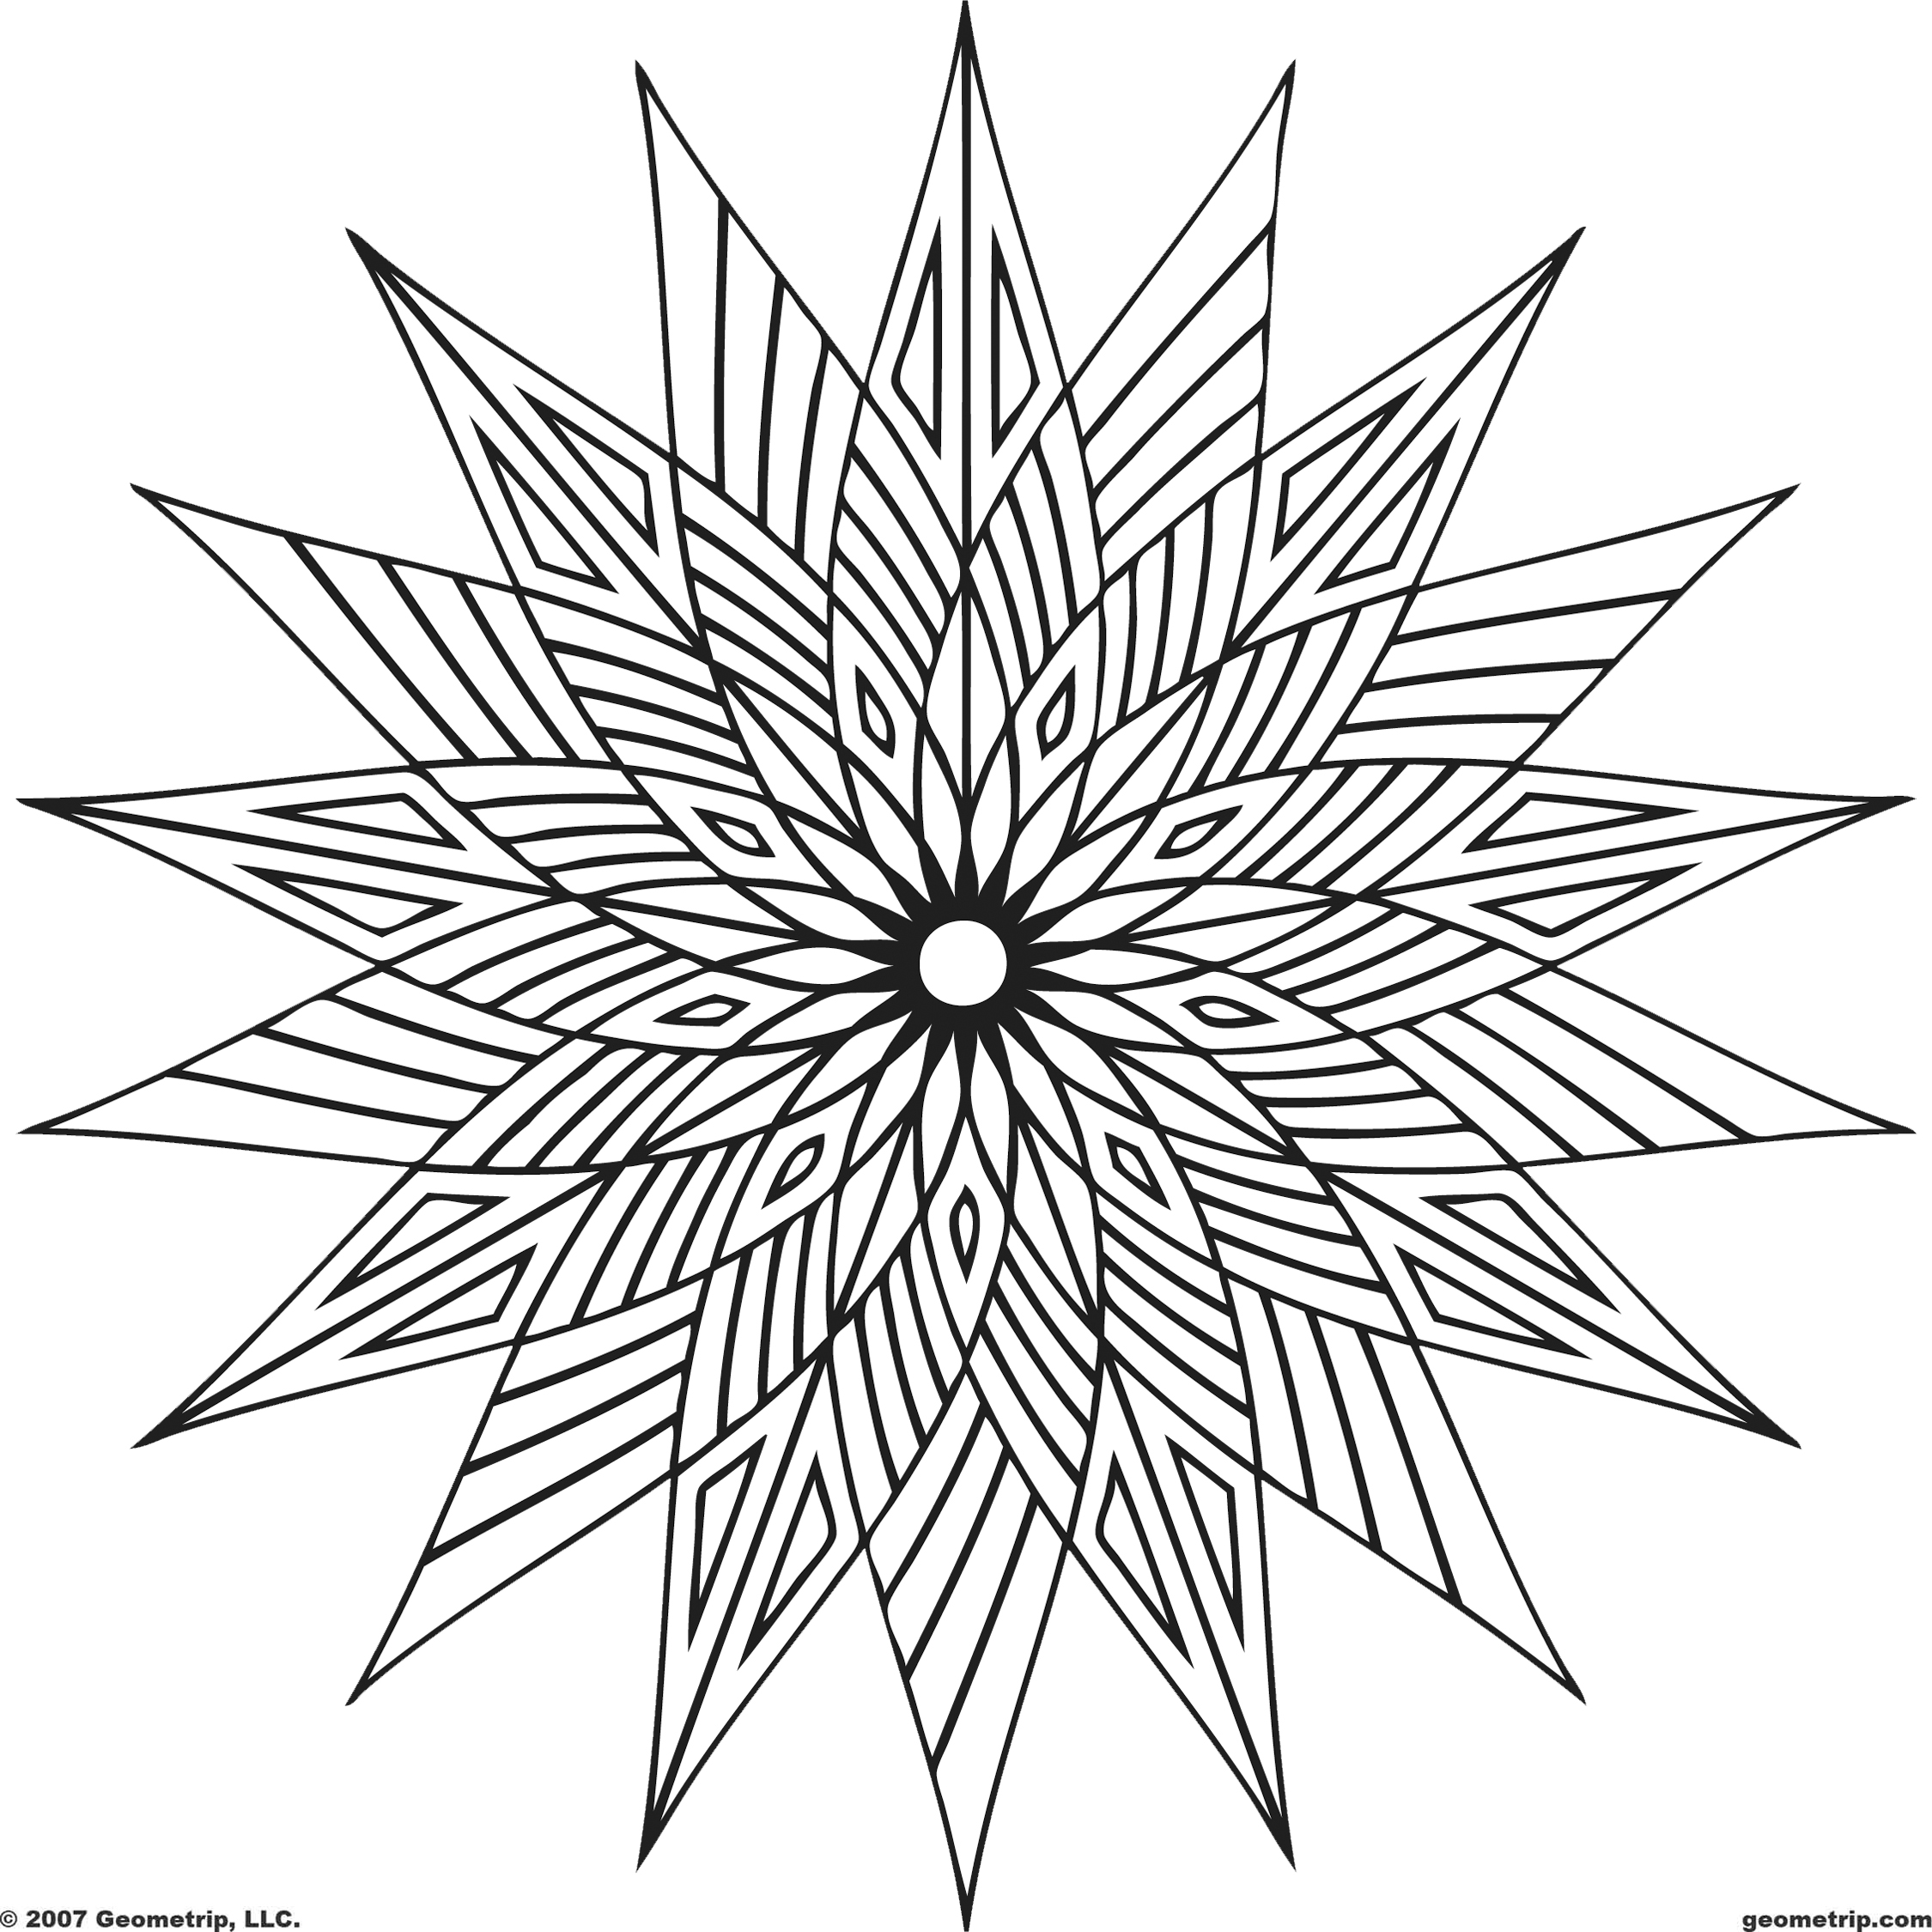 pattern colouring pages to print 16 cool coloring pages of designs images cool geometric print colouring to pages pattern